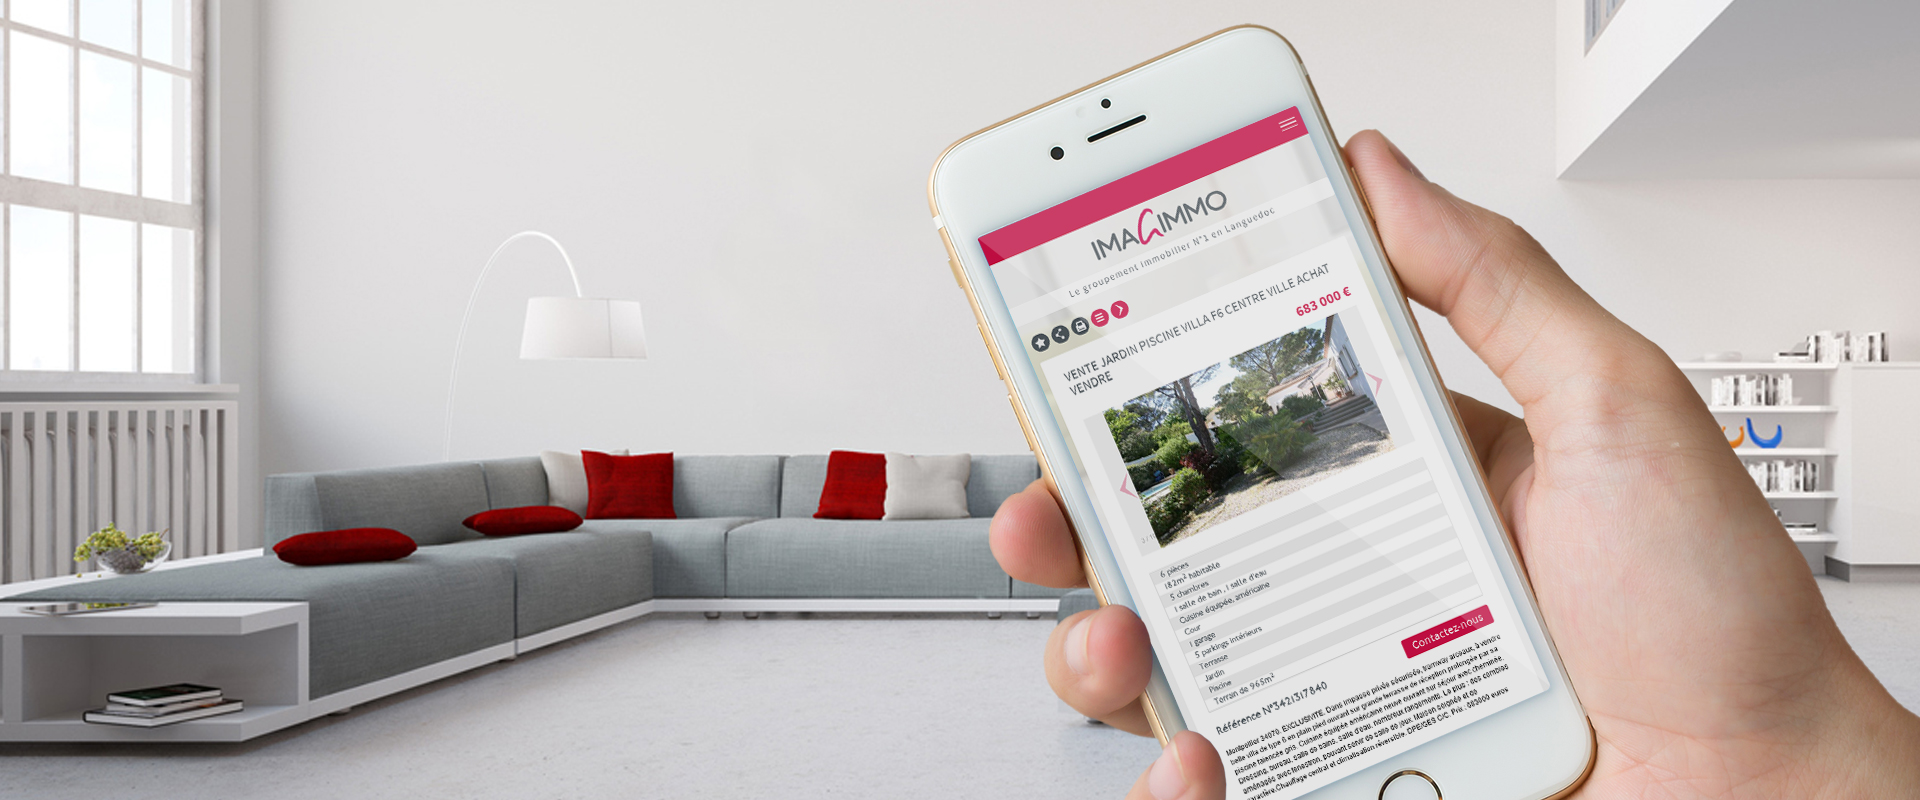 Site immobilier compatible mobile